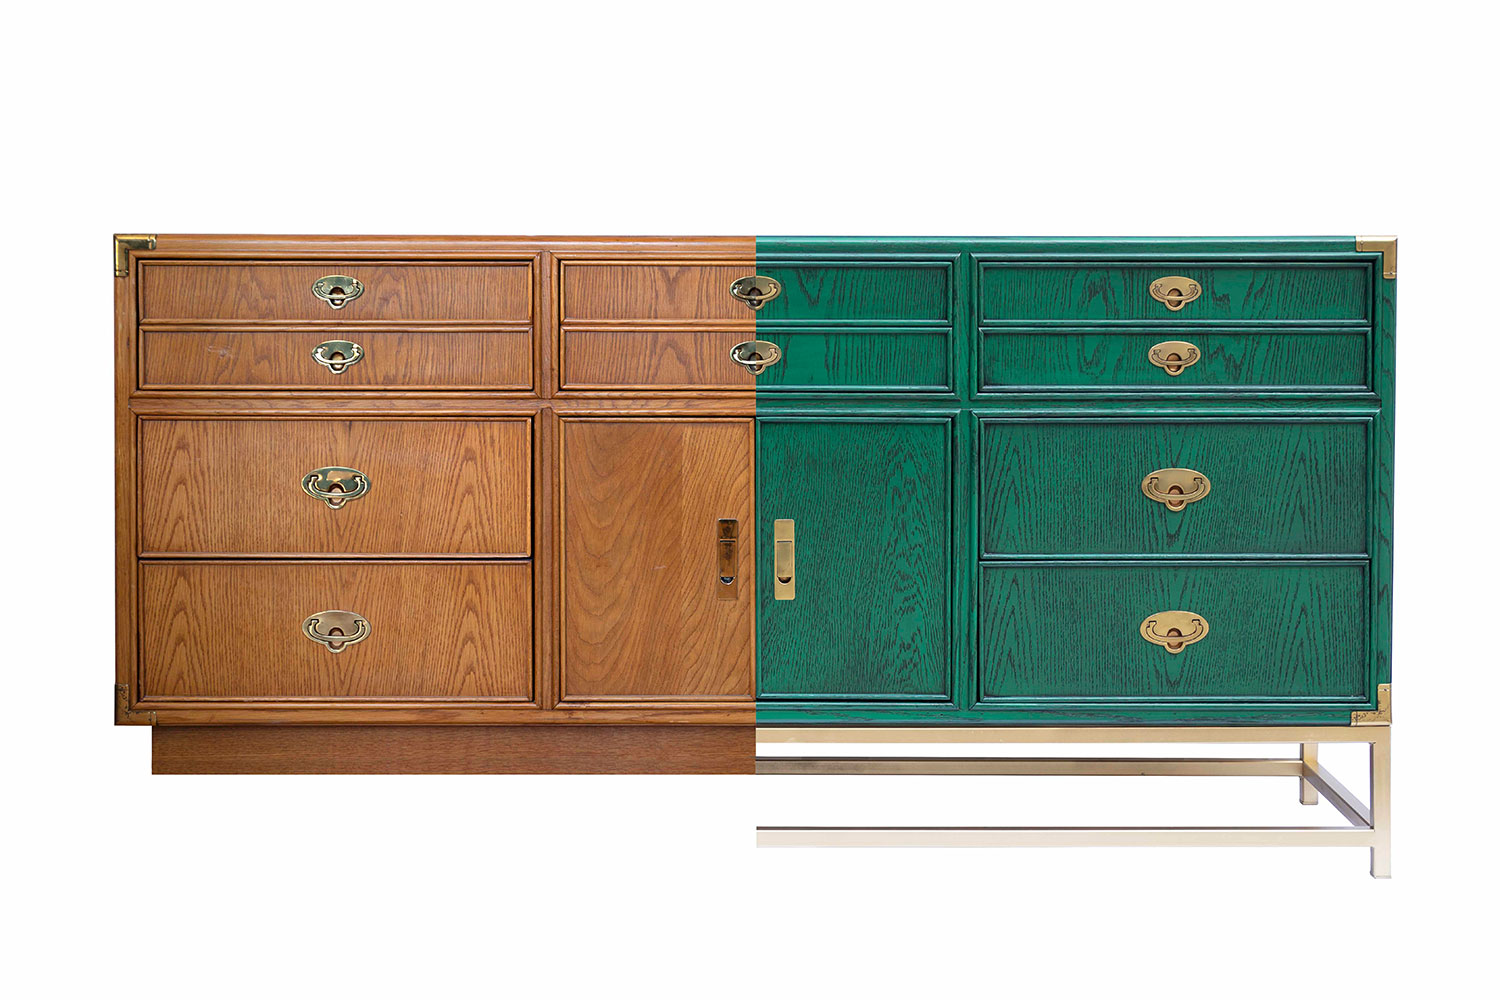 How to refinish old furniture | Better Homes and Gardens